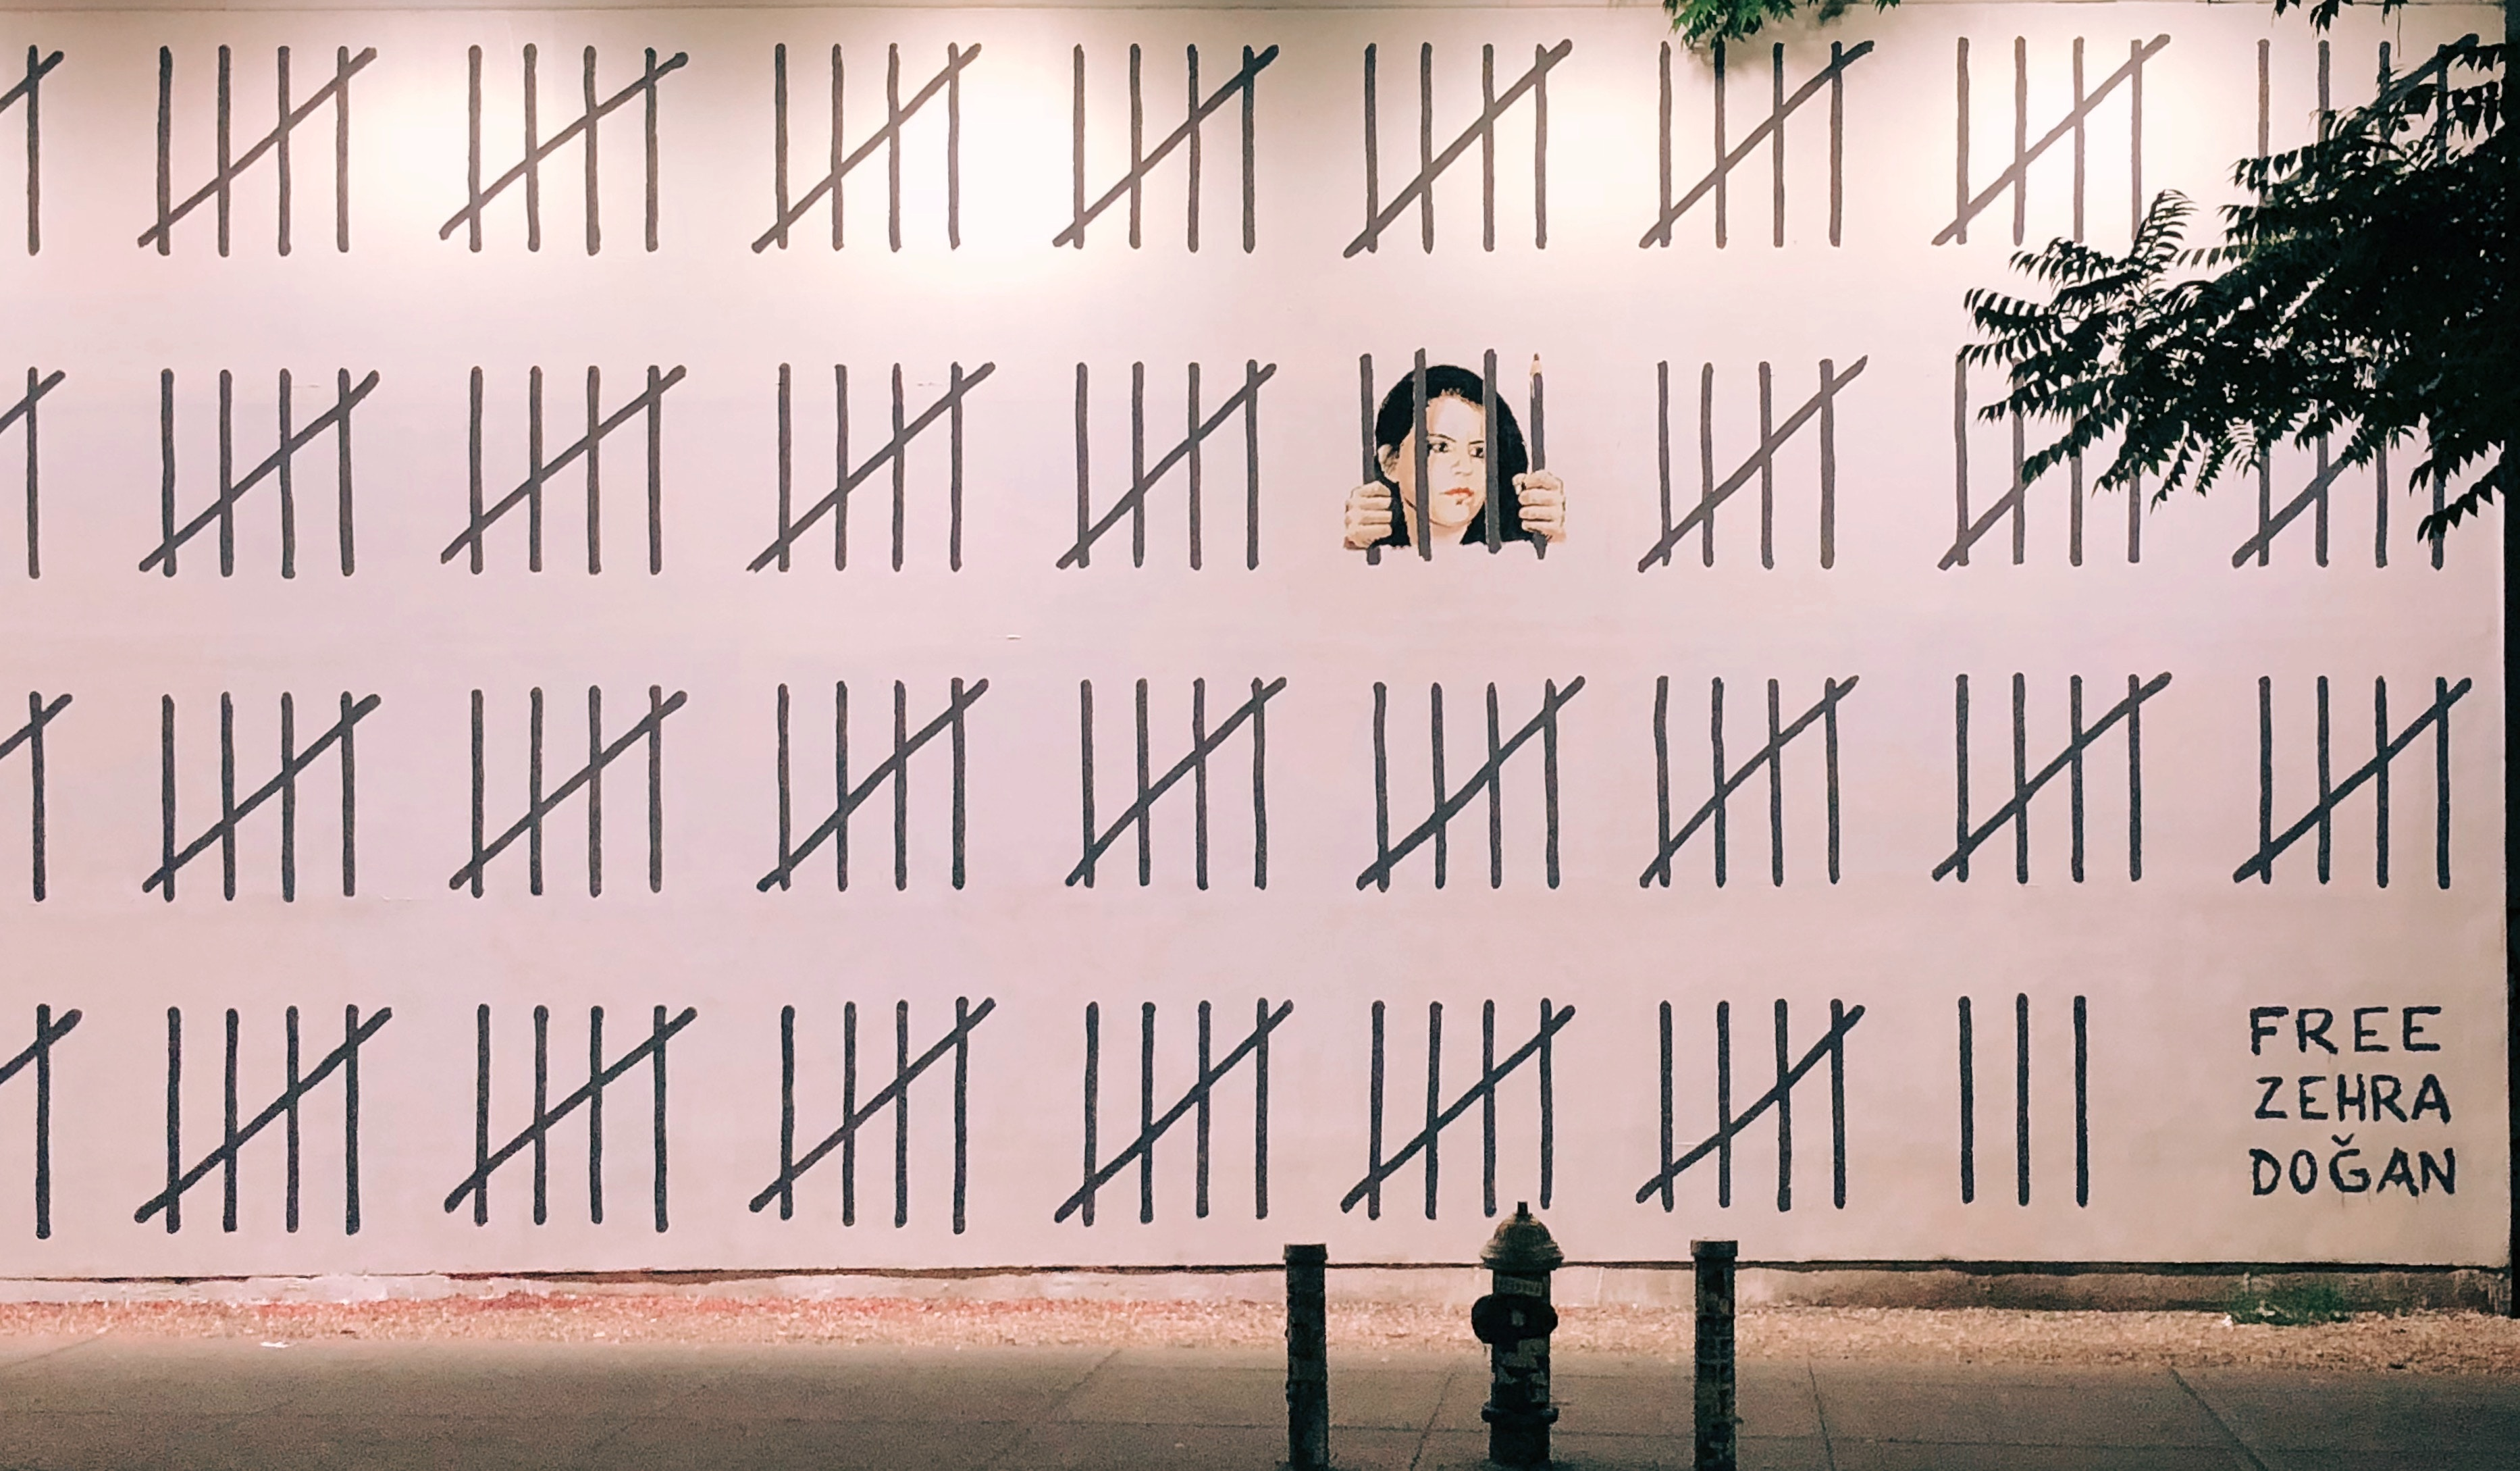 A 70-foot mural by street artist Banksy that tallies the days that Doğan spent in prison.